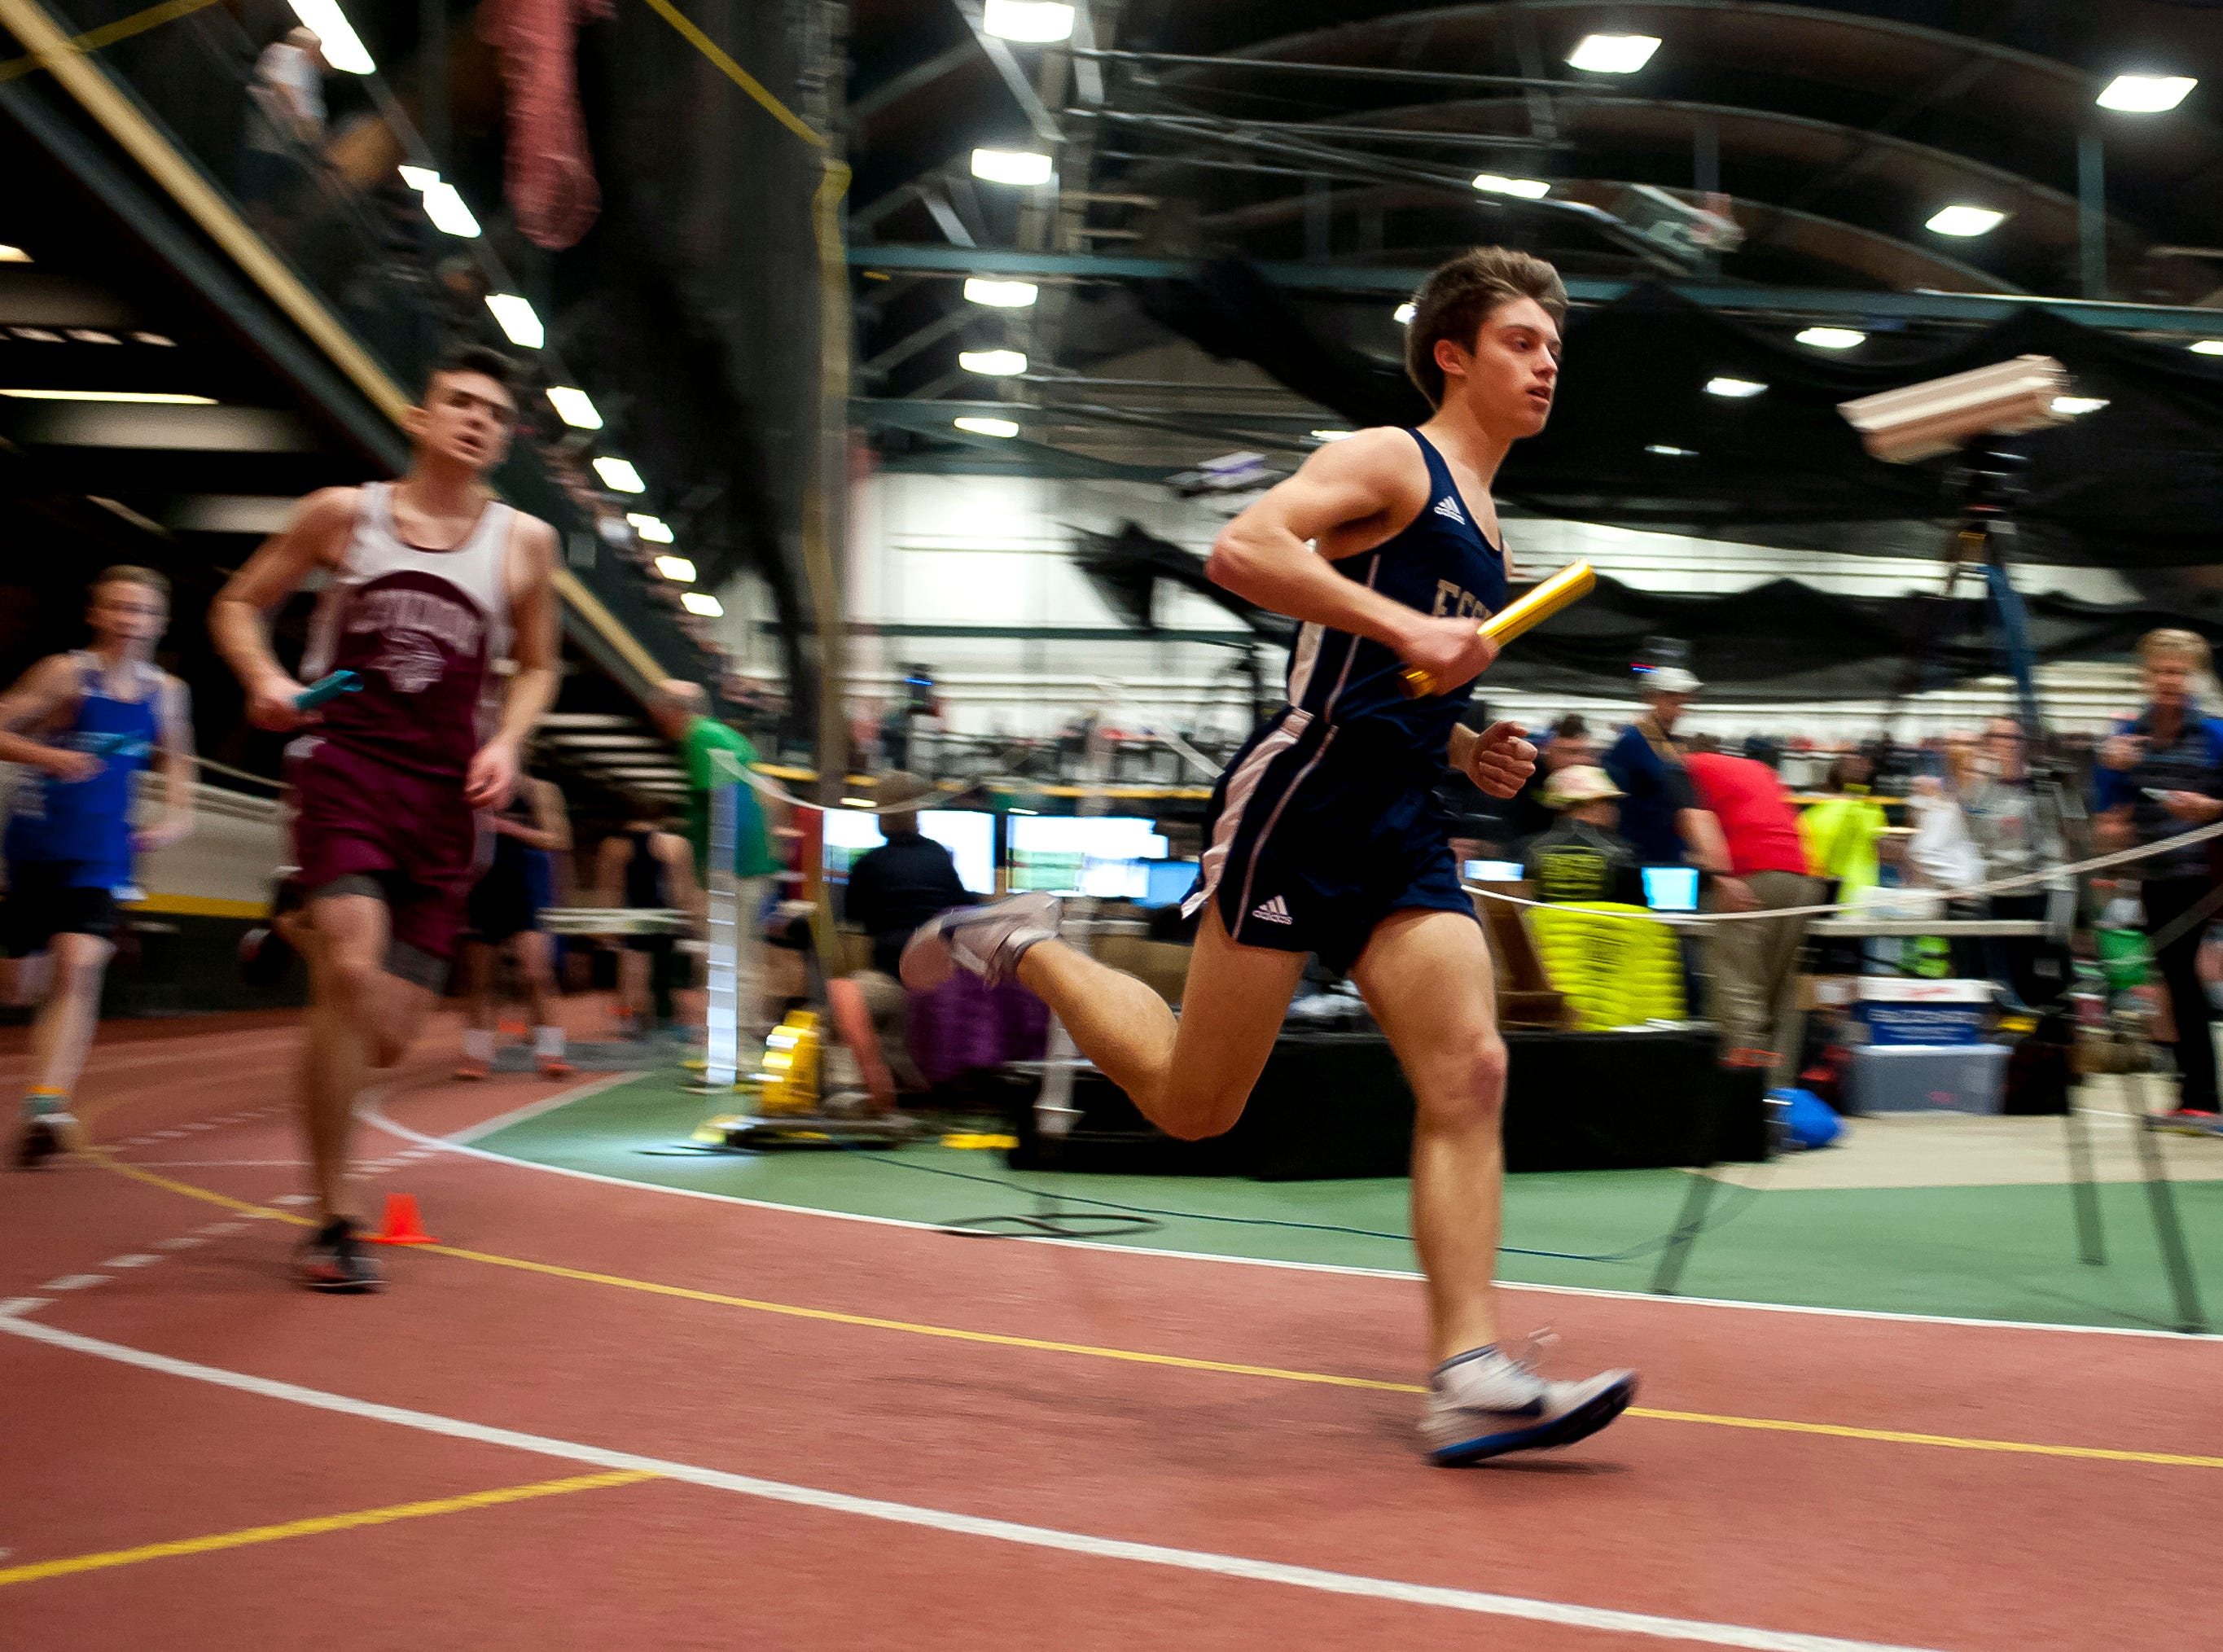 Essex's Brady Martisus, right, takes a corner in the boys 4x800 meter relay at the high school indoor track state championships at the University of Vermont on Saturday.